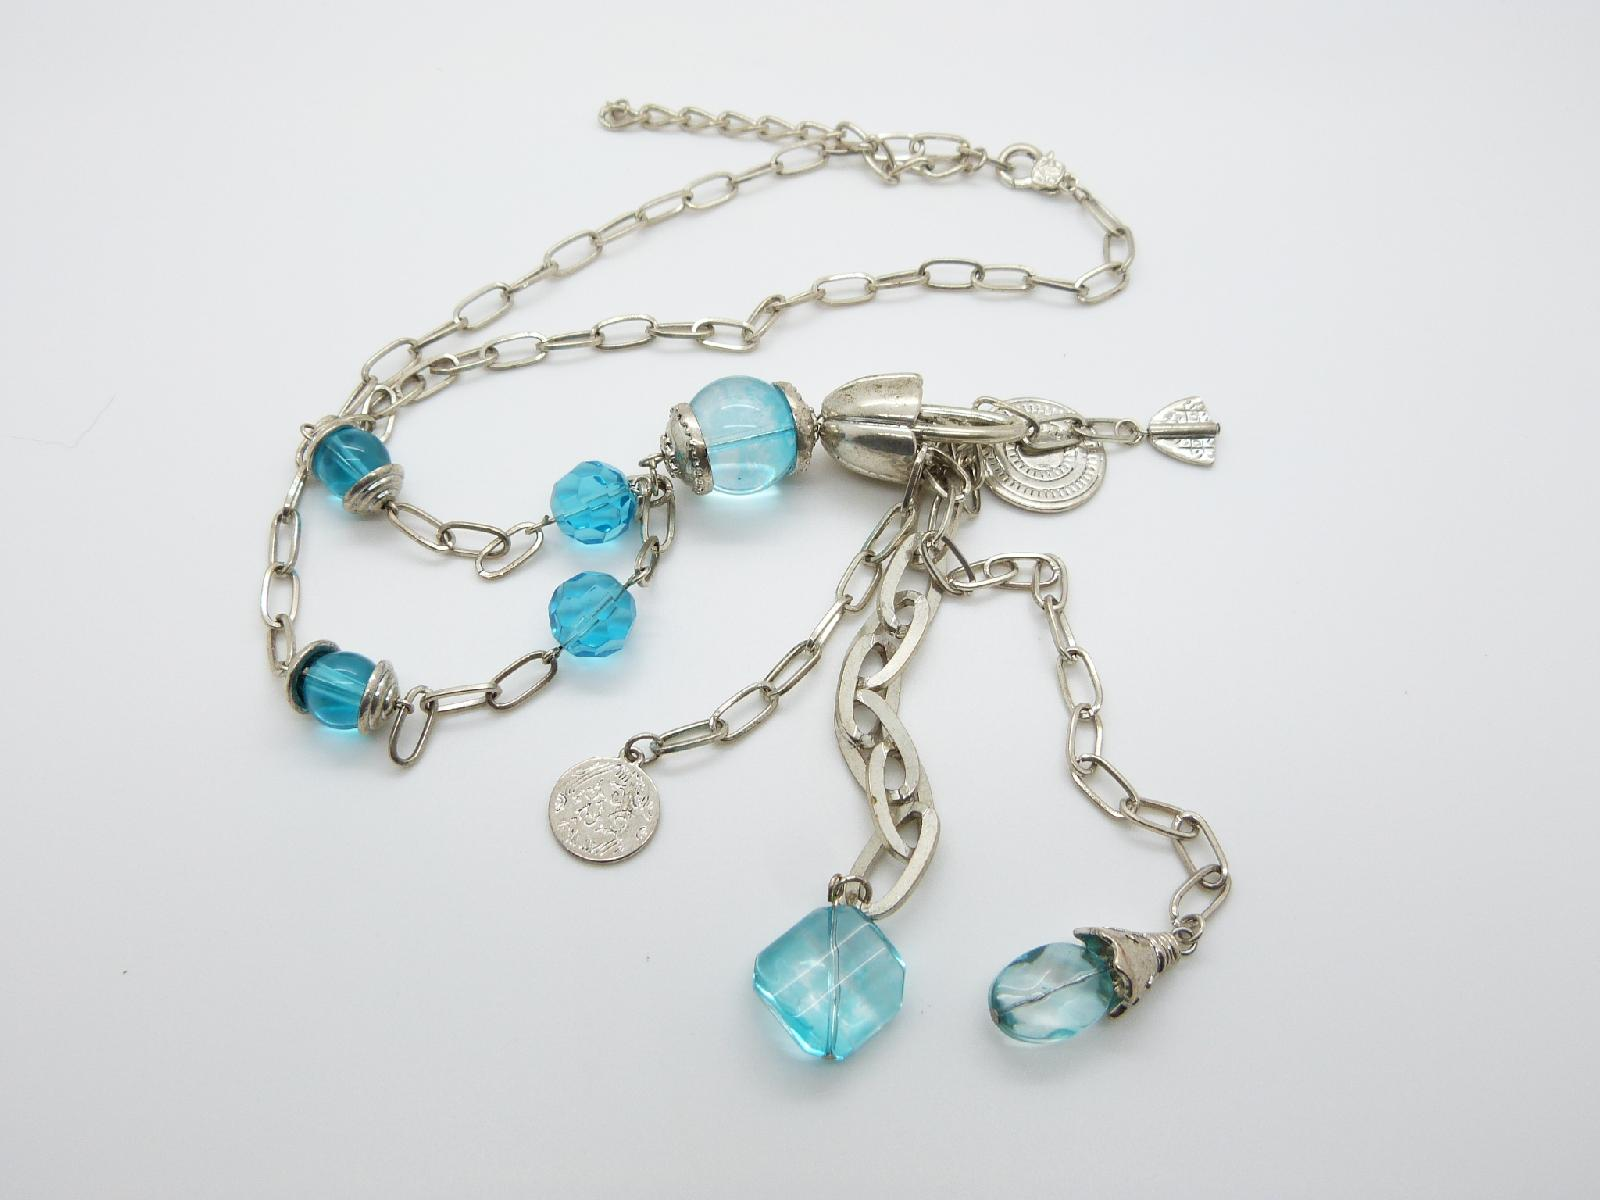 £25.00 - Long Silvertone Chain Link Necklace with Blue Glass Beads and Coin Charms